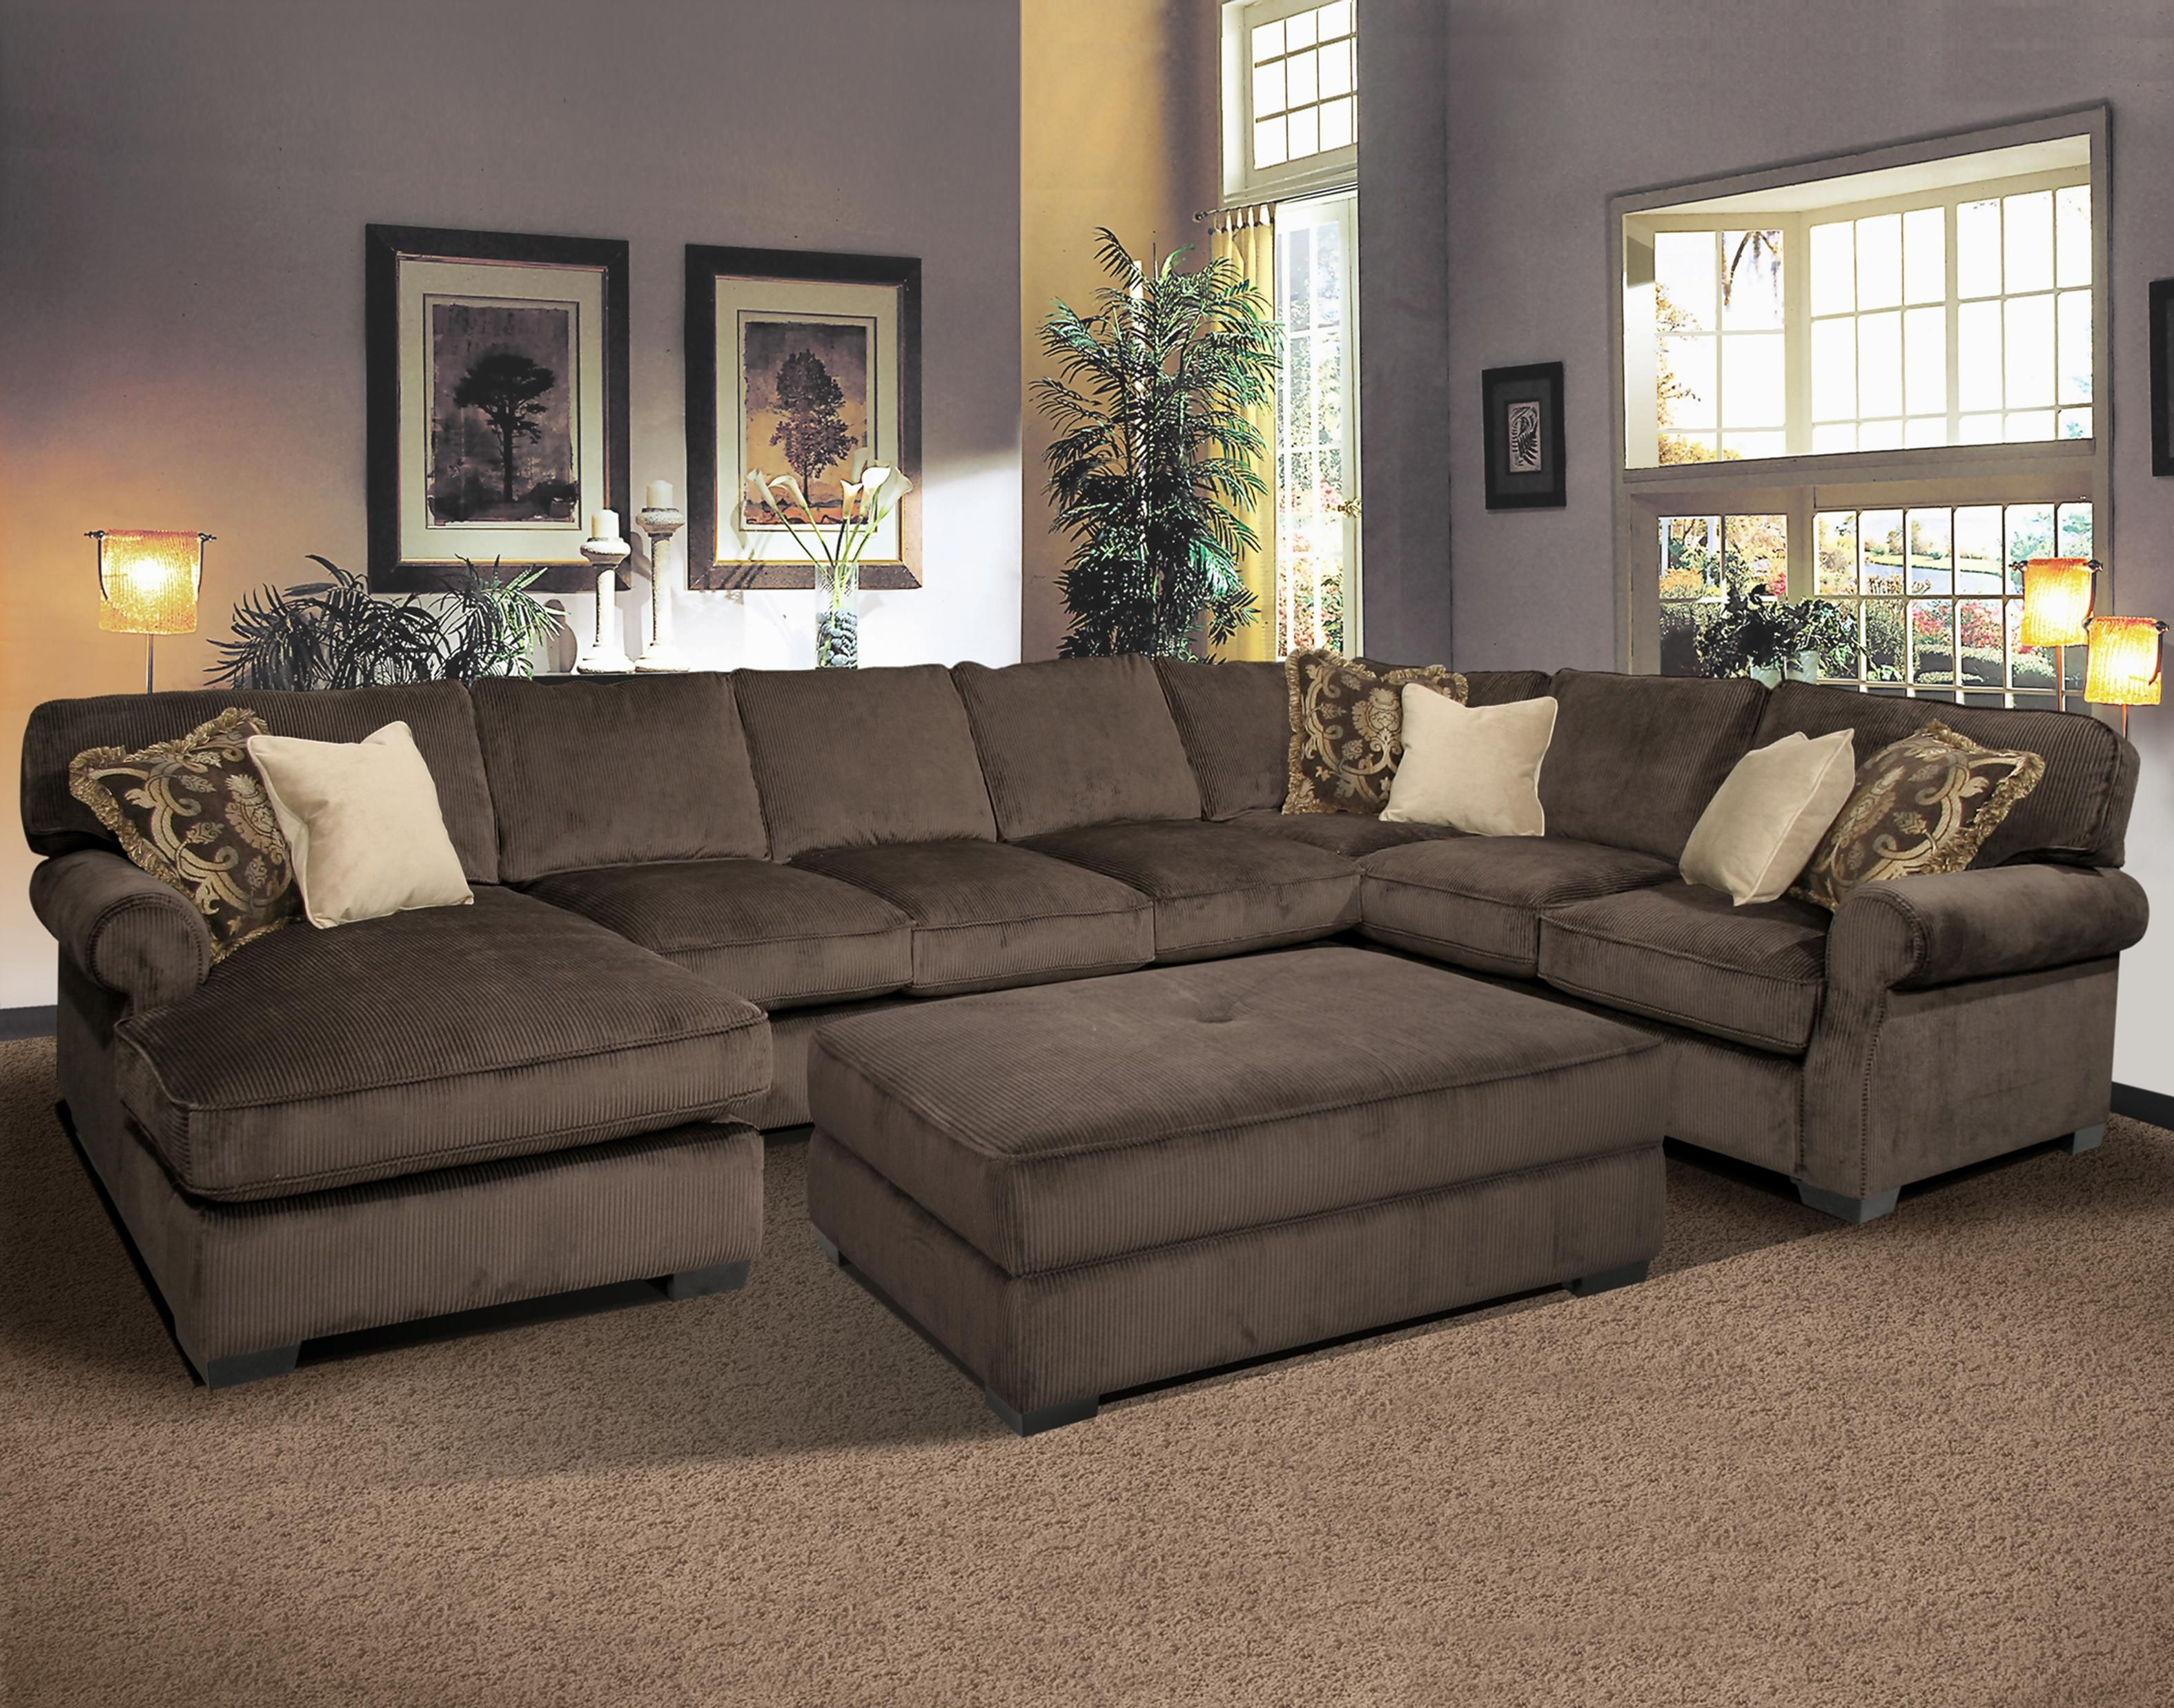 Grand Island Oversized Cocktail Ottoman For Sectional Sofa With Large Sectional Sofas (Image 4 of 10)